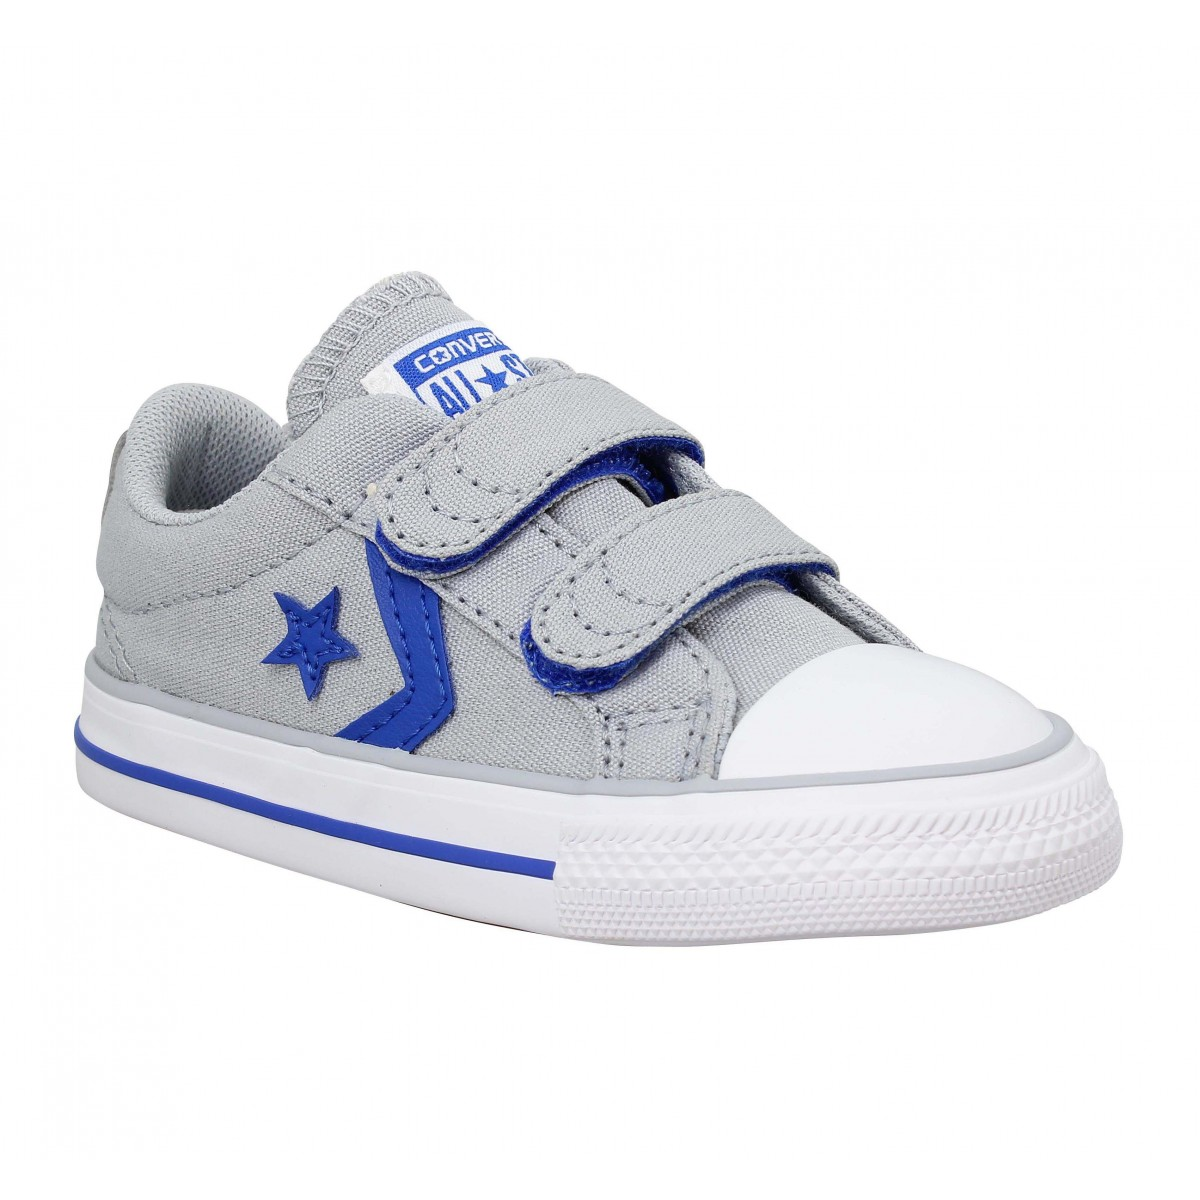 Baskets CONVERSE Star Player 2V toile Enfant Grey